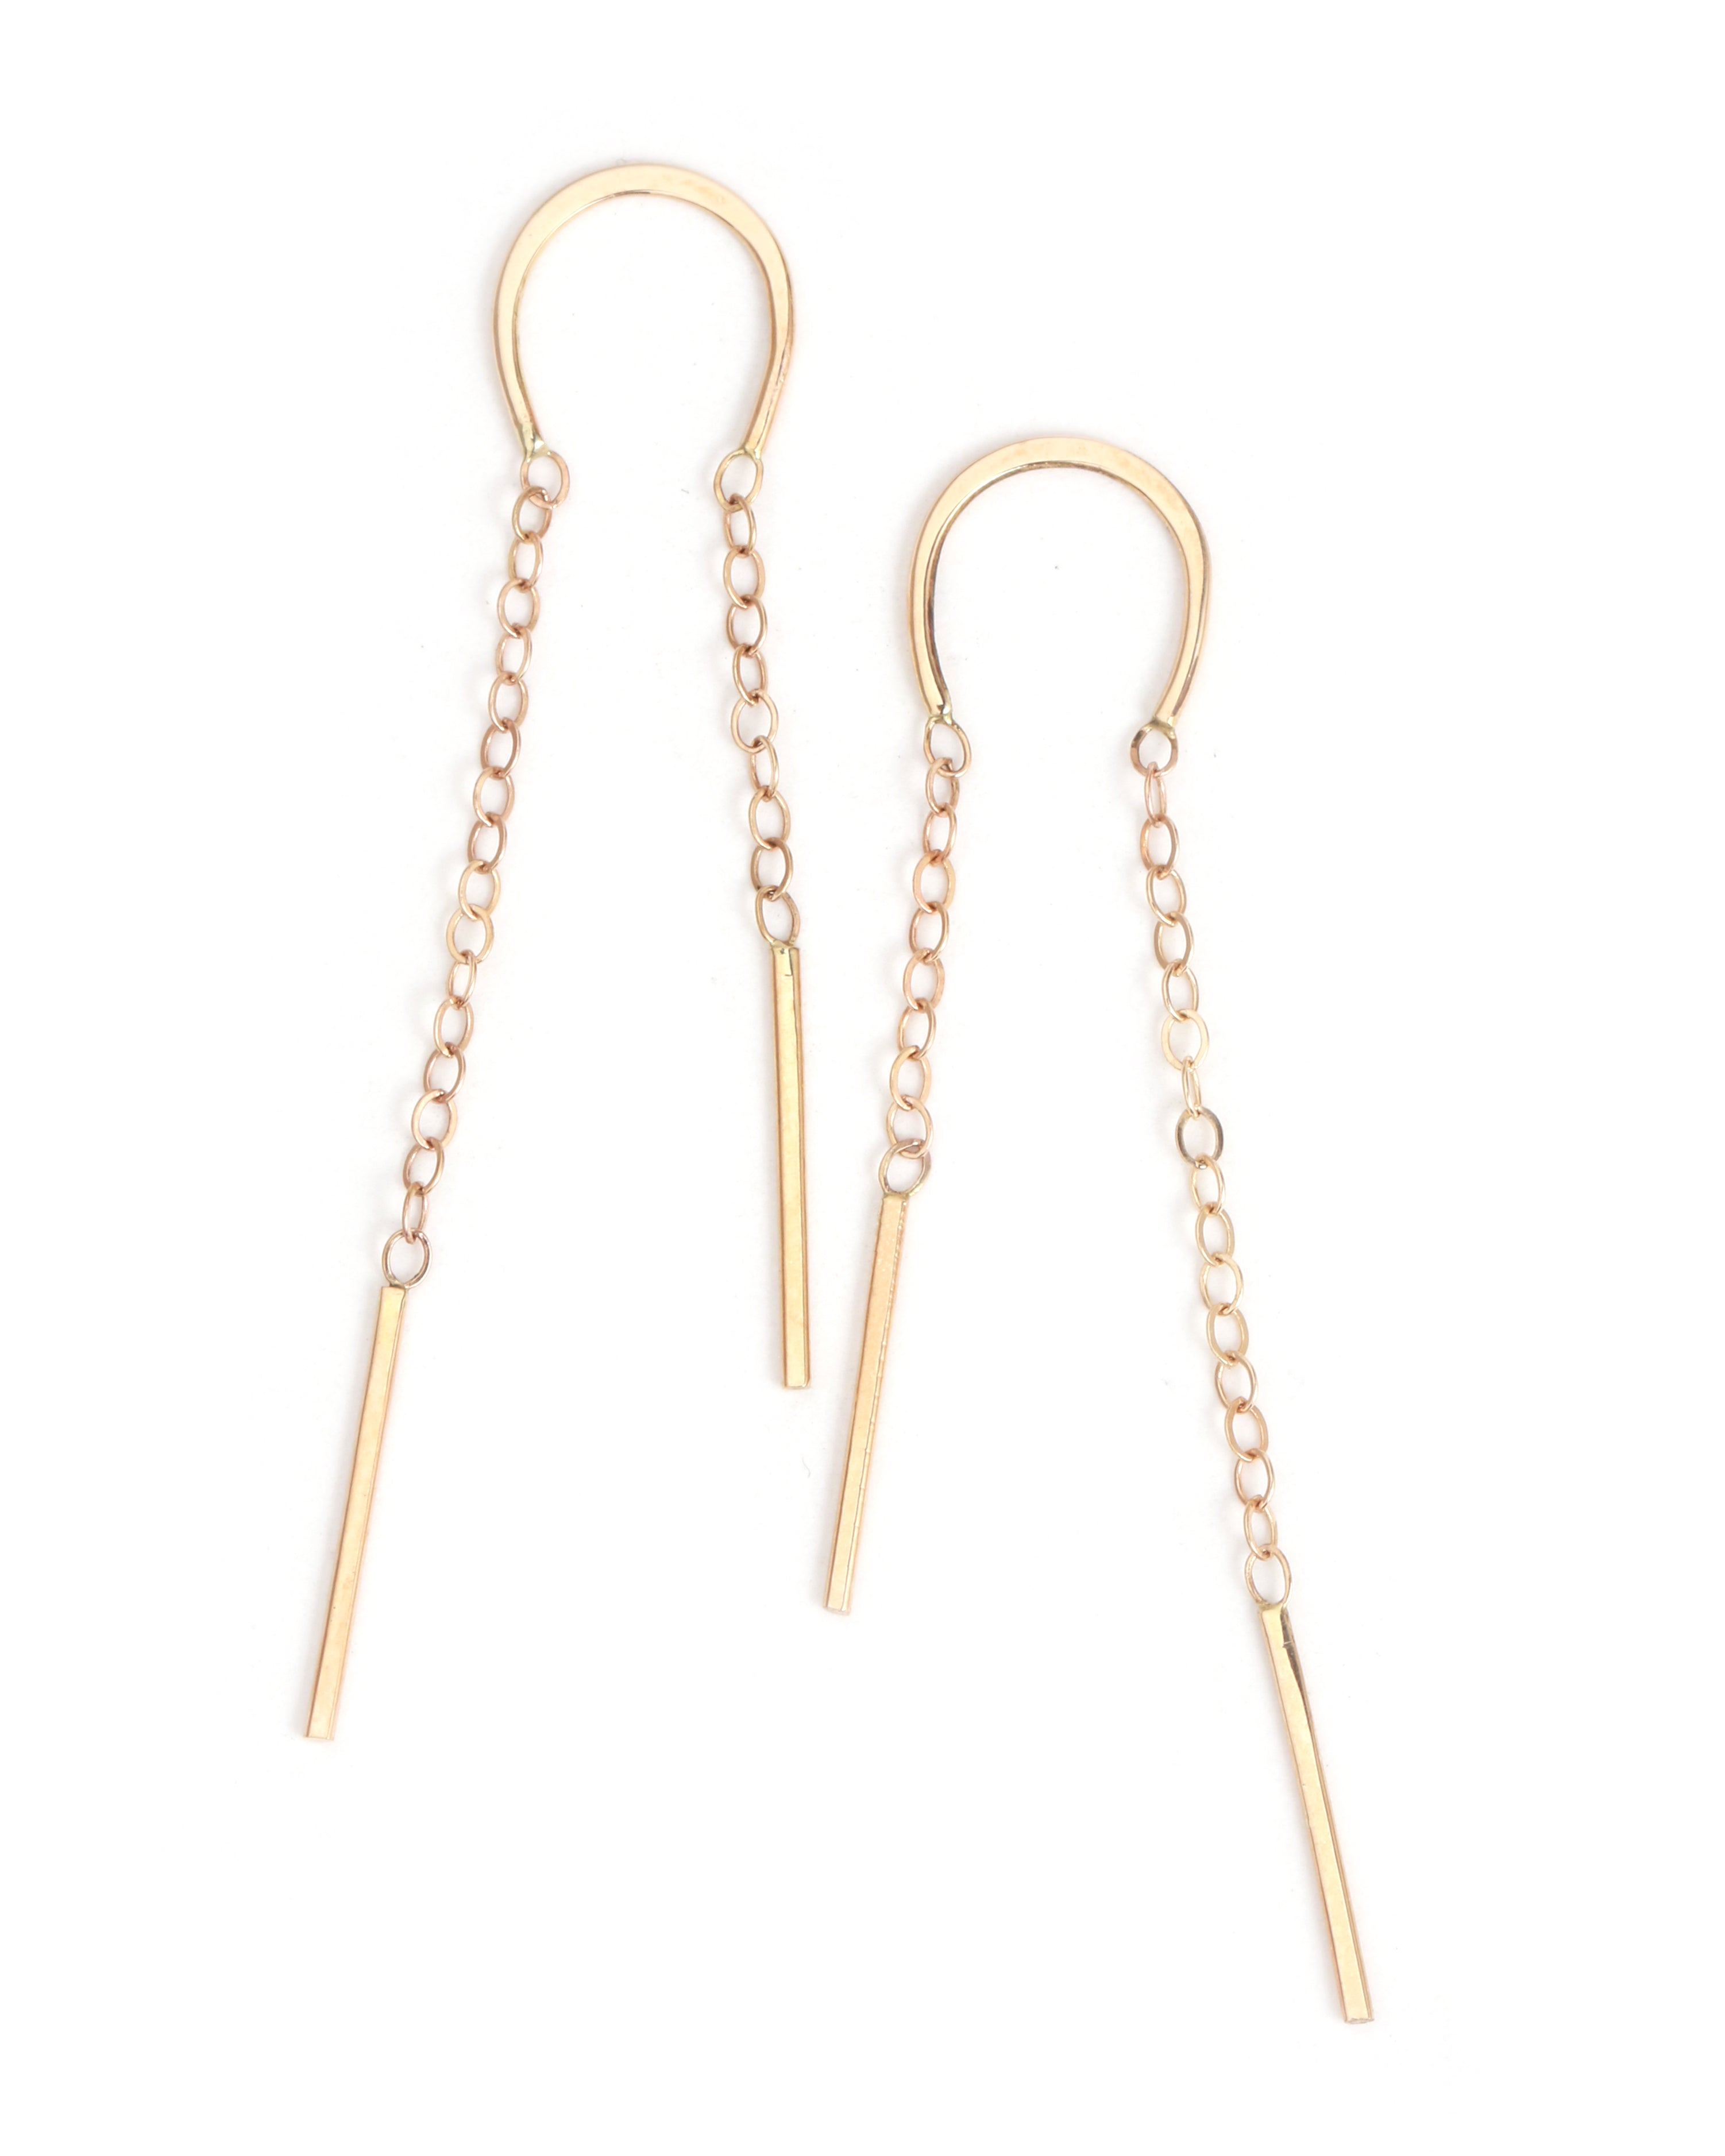 Horseshoe chain earrings - Melissa Joy Manning Jewelry